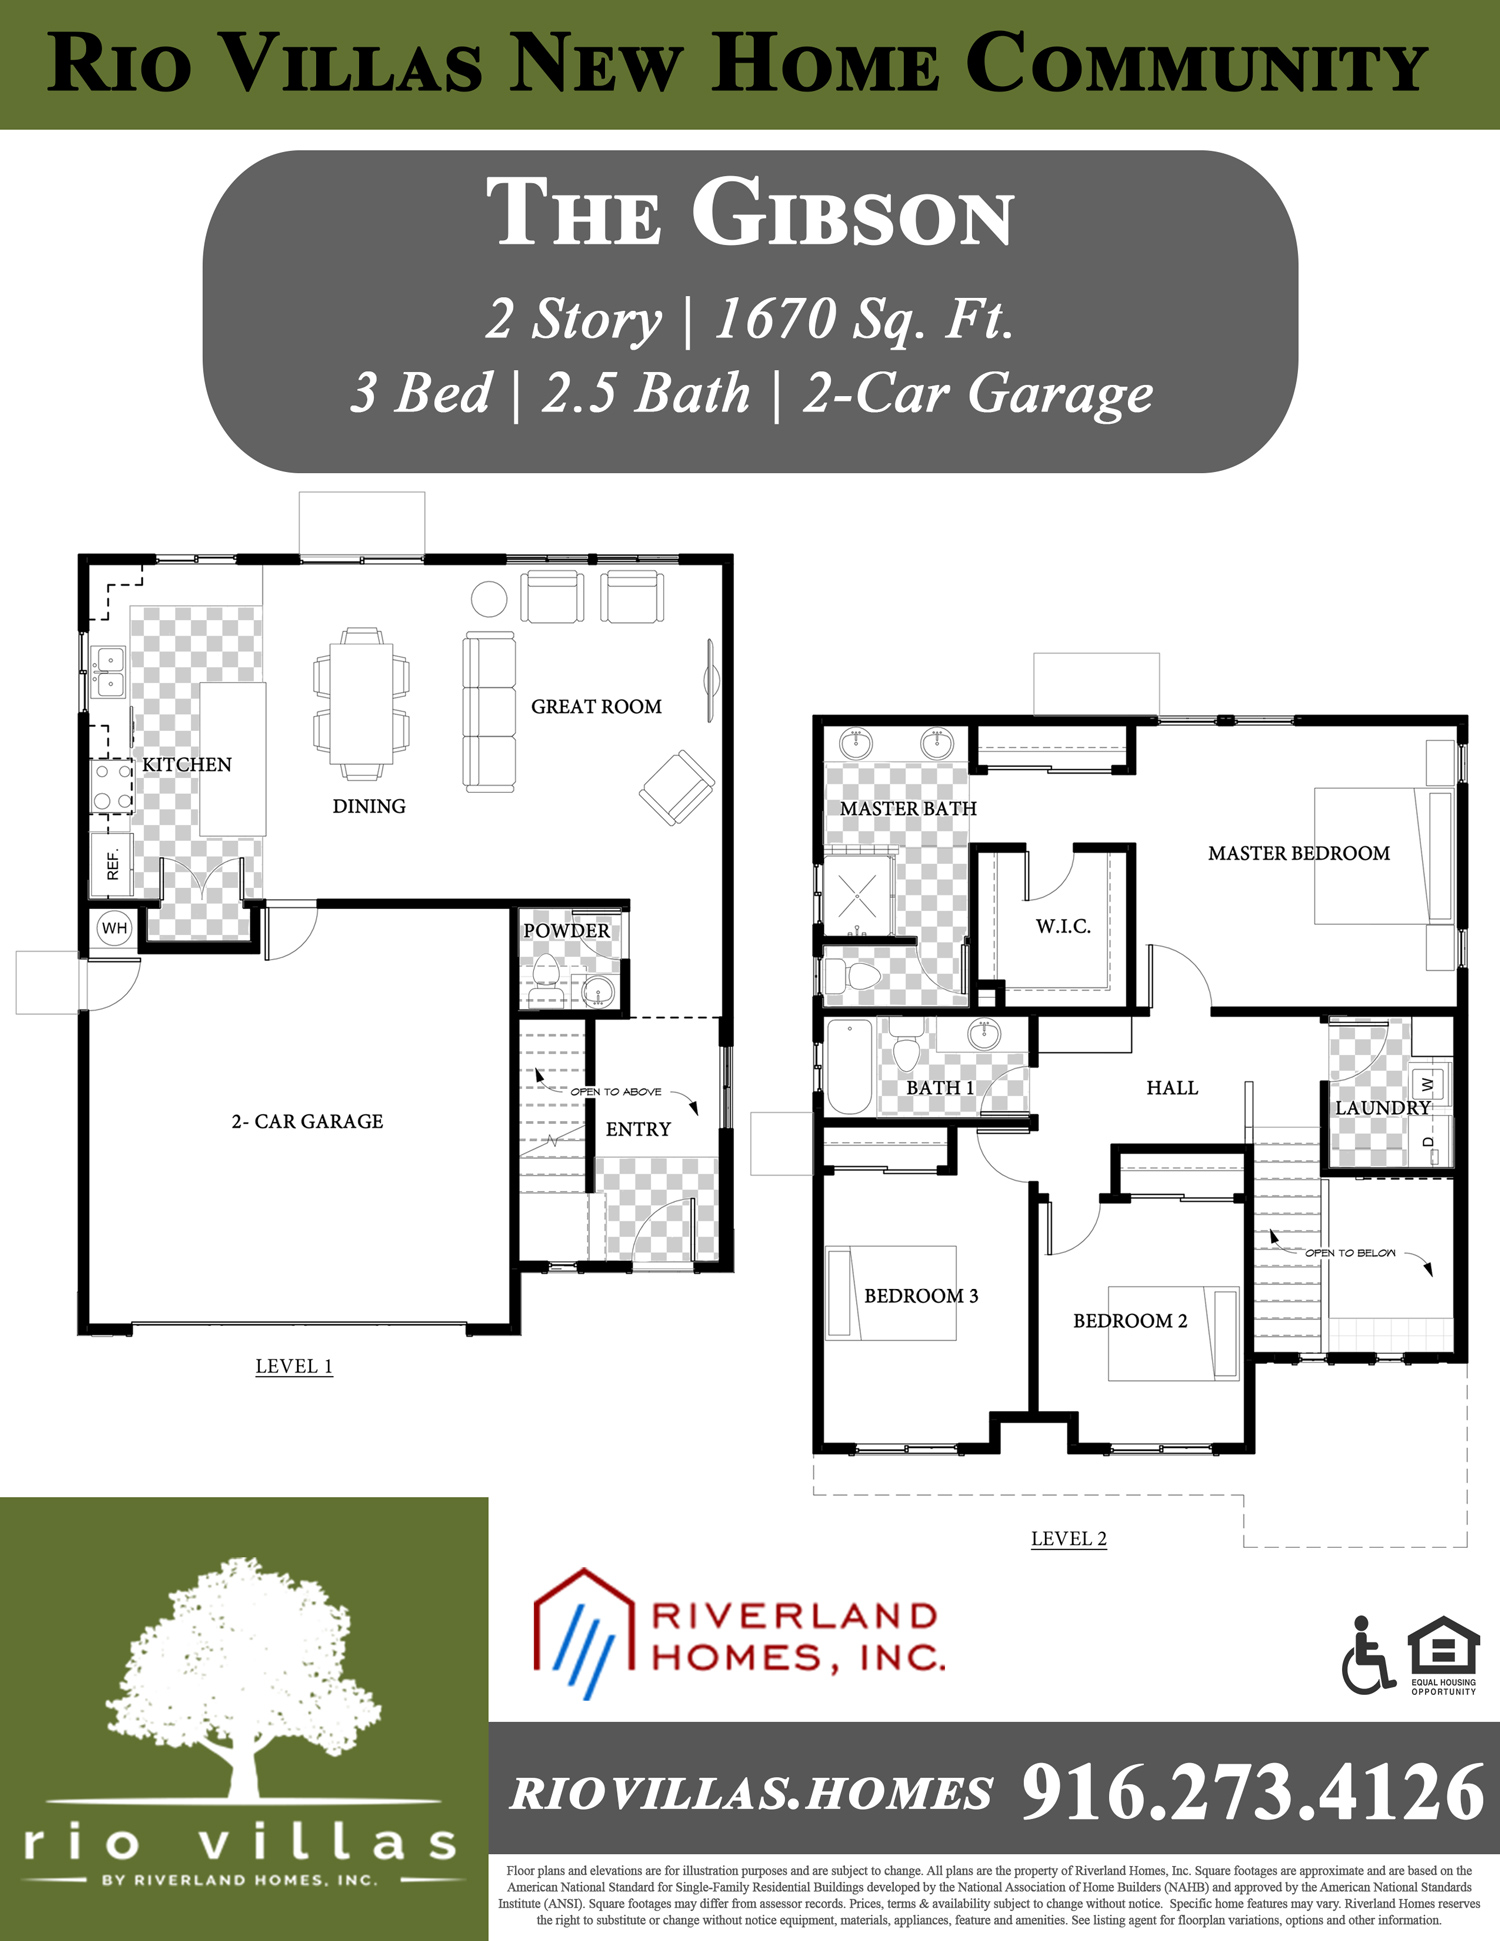 Riverland Homes Properties - Rio Villas - The Gibson